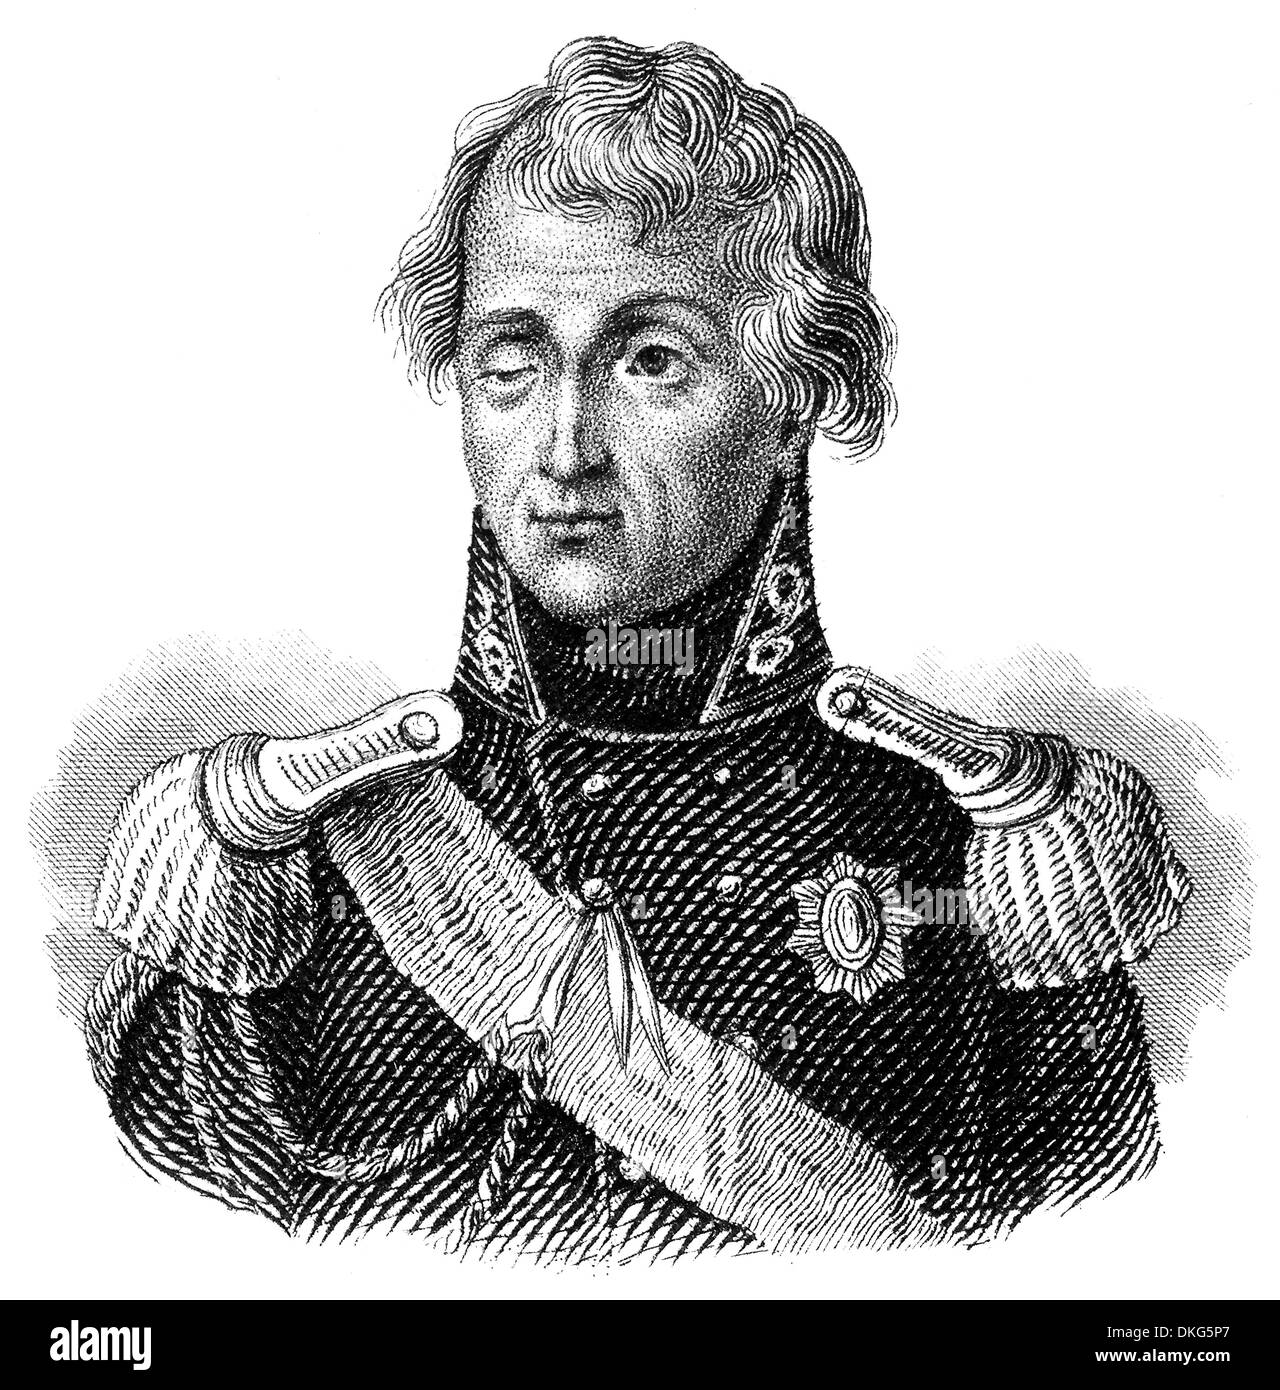 Portrait of Mikhail Illarionovich Golenishchev-Kutuzov, 1745 - 1813, a Field Marshal of the Russian Empire, - Stock Image